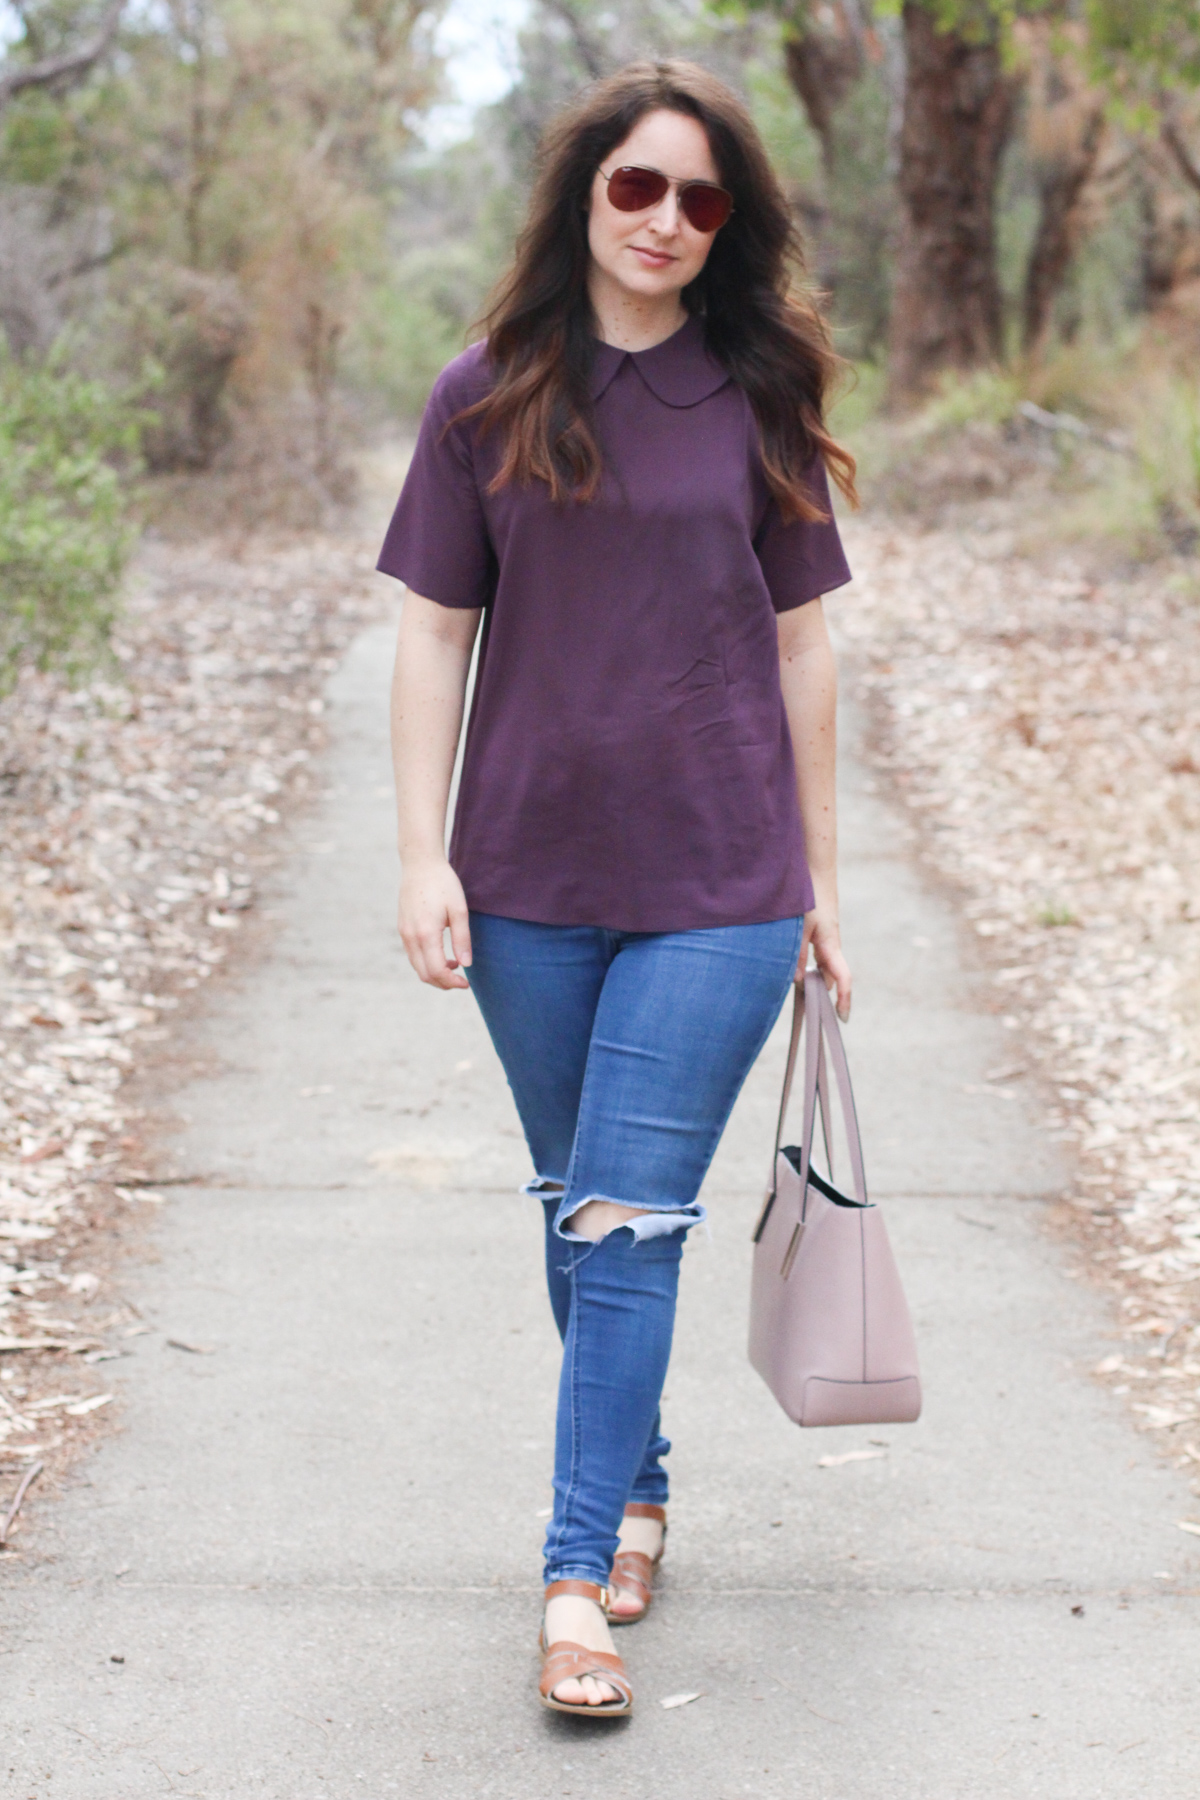 10 most worn makes in 10 years of blogging // Megan Nielsen silk Sudley blouse